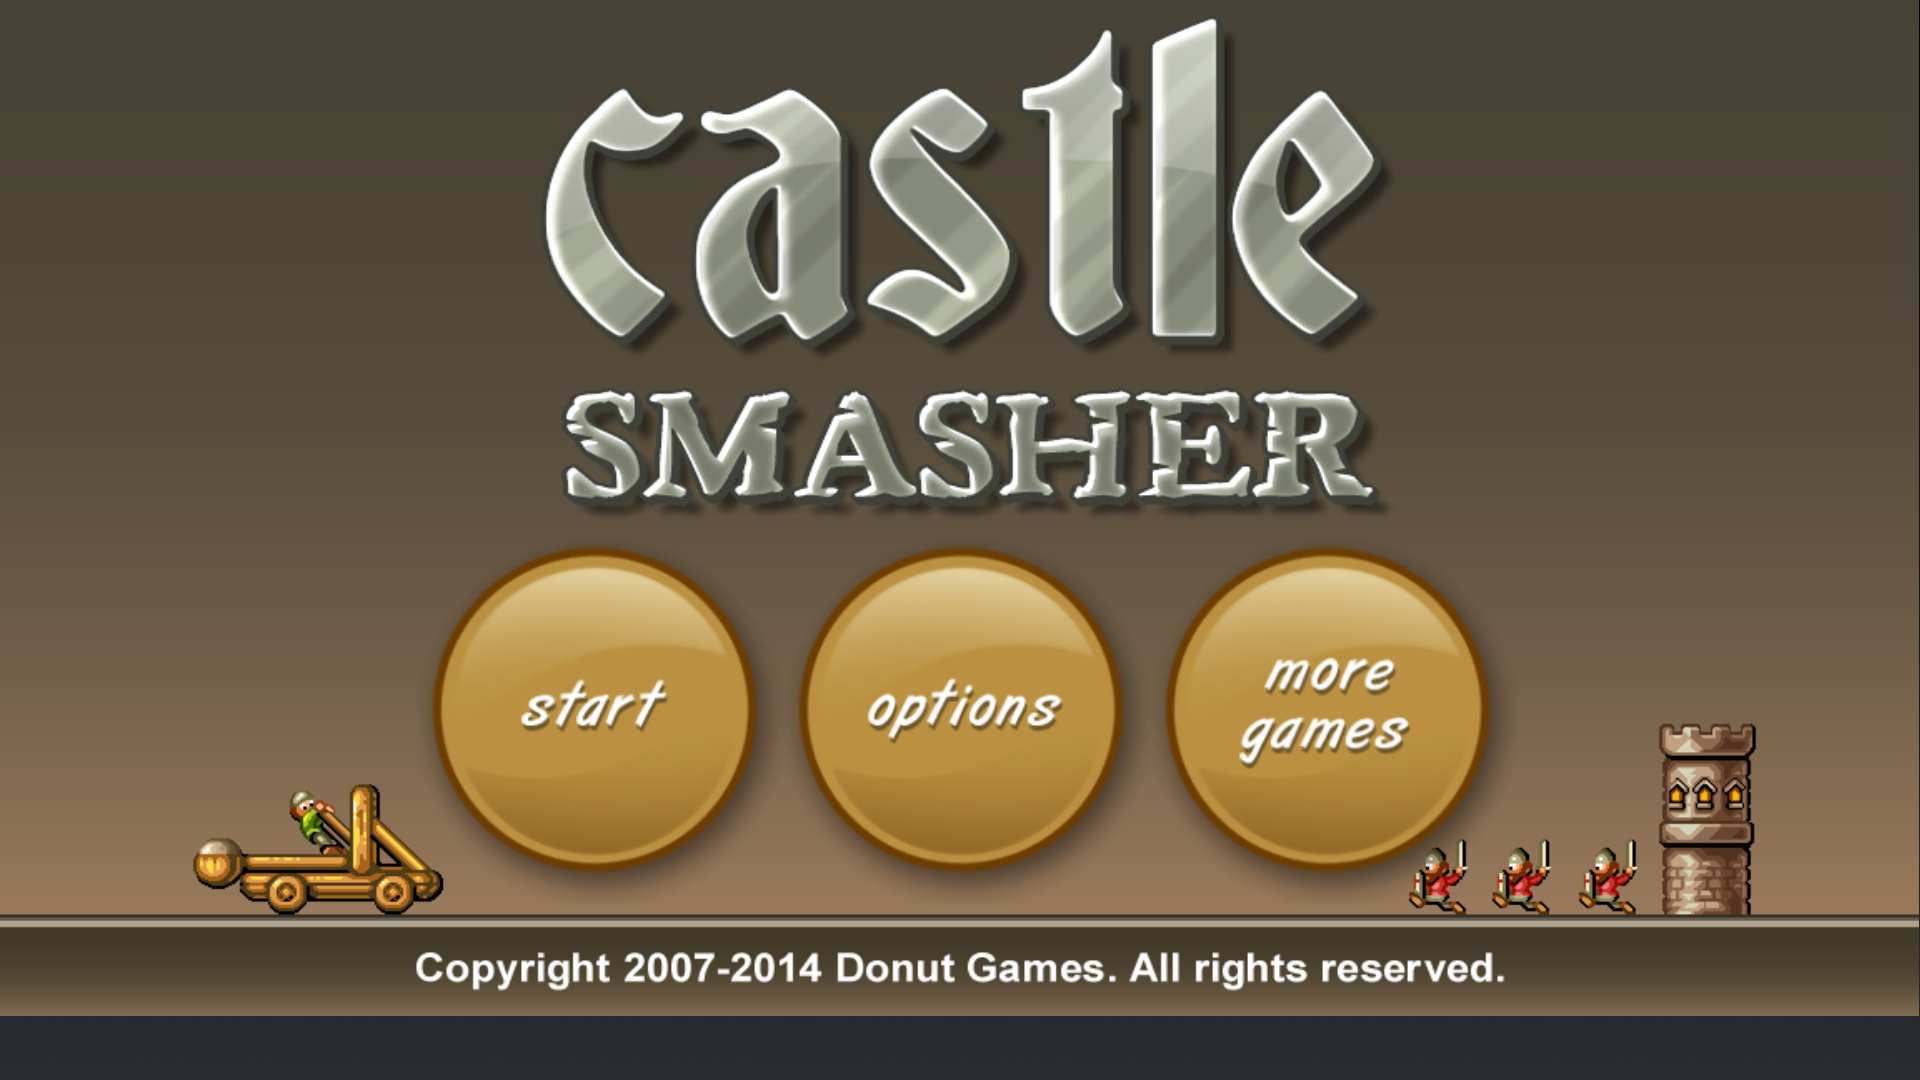 Bamse: Castle Smasher: Challenges: 33 Gates Of The Enemy (Android) 87 points on 2019-09-10 17:46:00